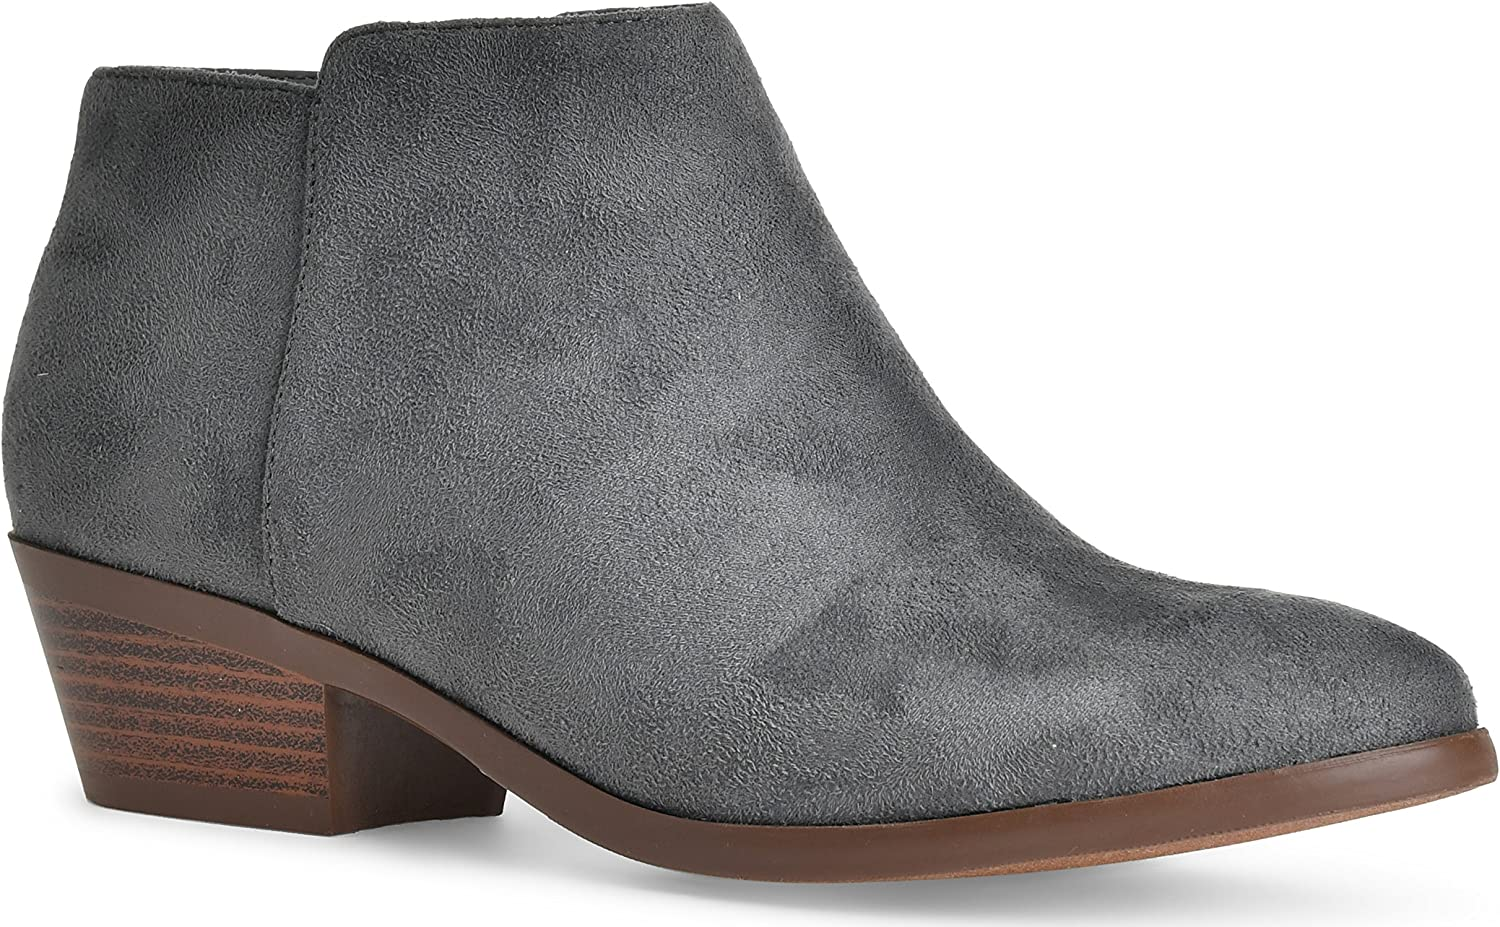 SODA Women's Round Toe Faux Suede Stacked Heel Western Ankle Bootie, Clay, 85 M US